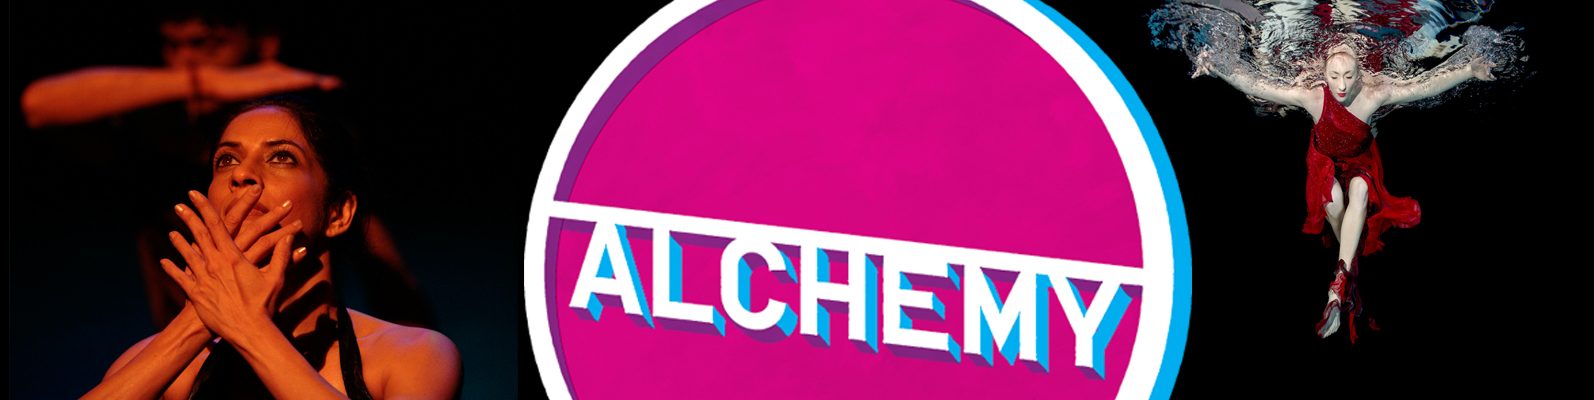 Alchemy at Southbank Centre, London.